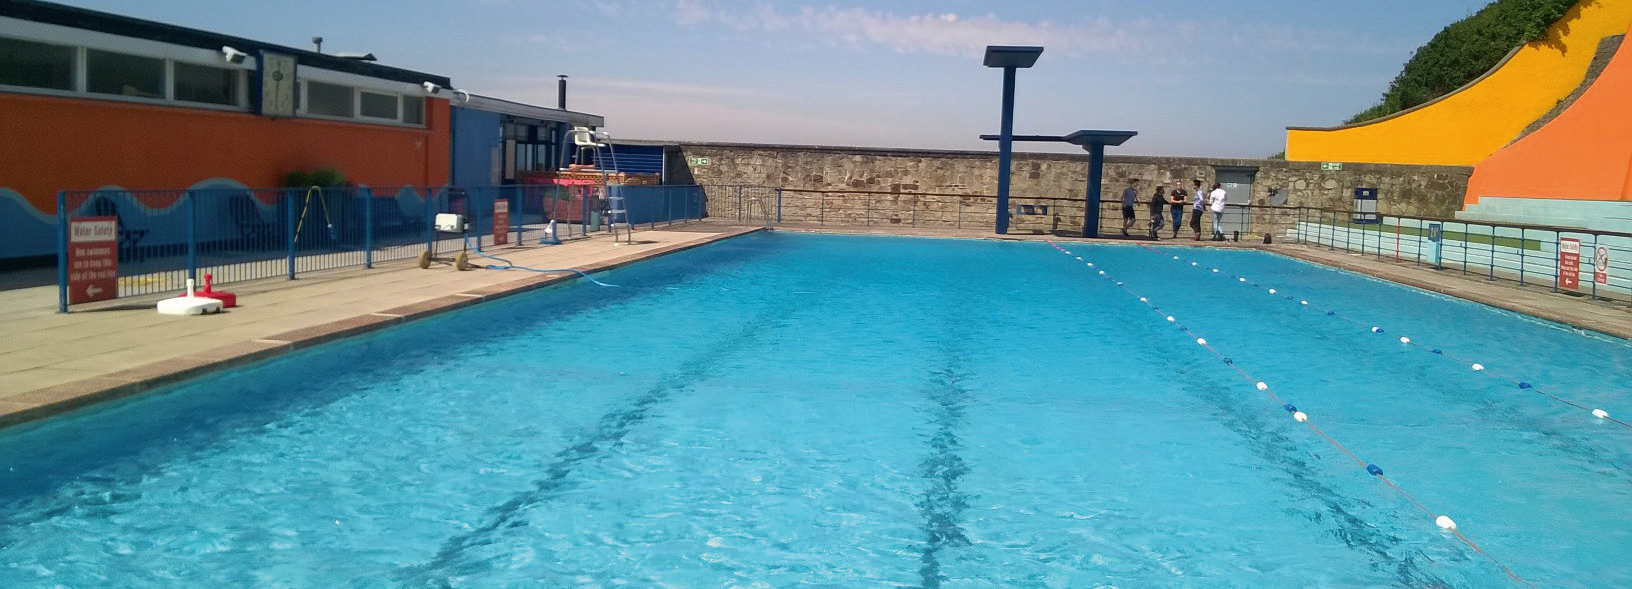 The refurbishment of Portishead Open Air Pool is being led by CP Pools and DG Pools & Leisure.